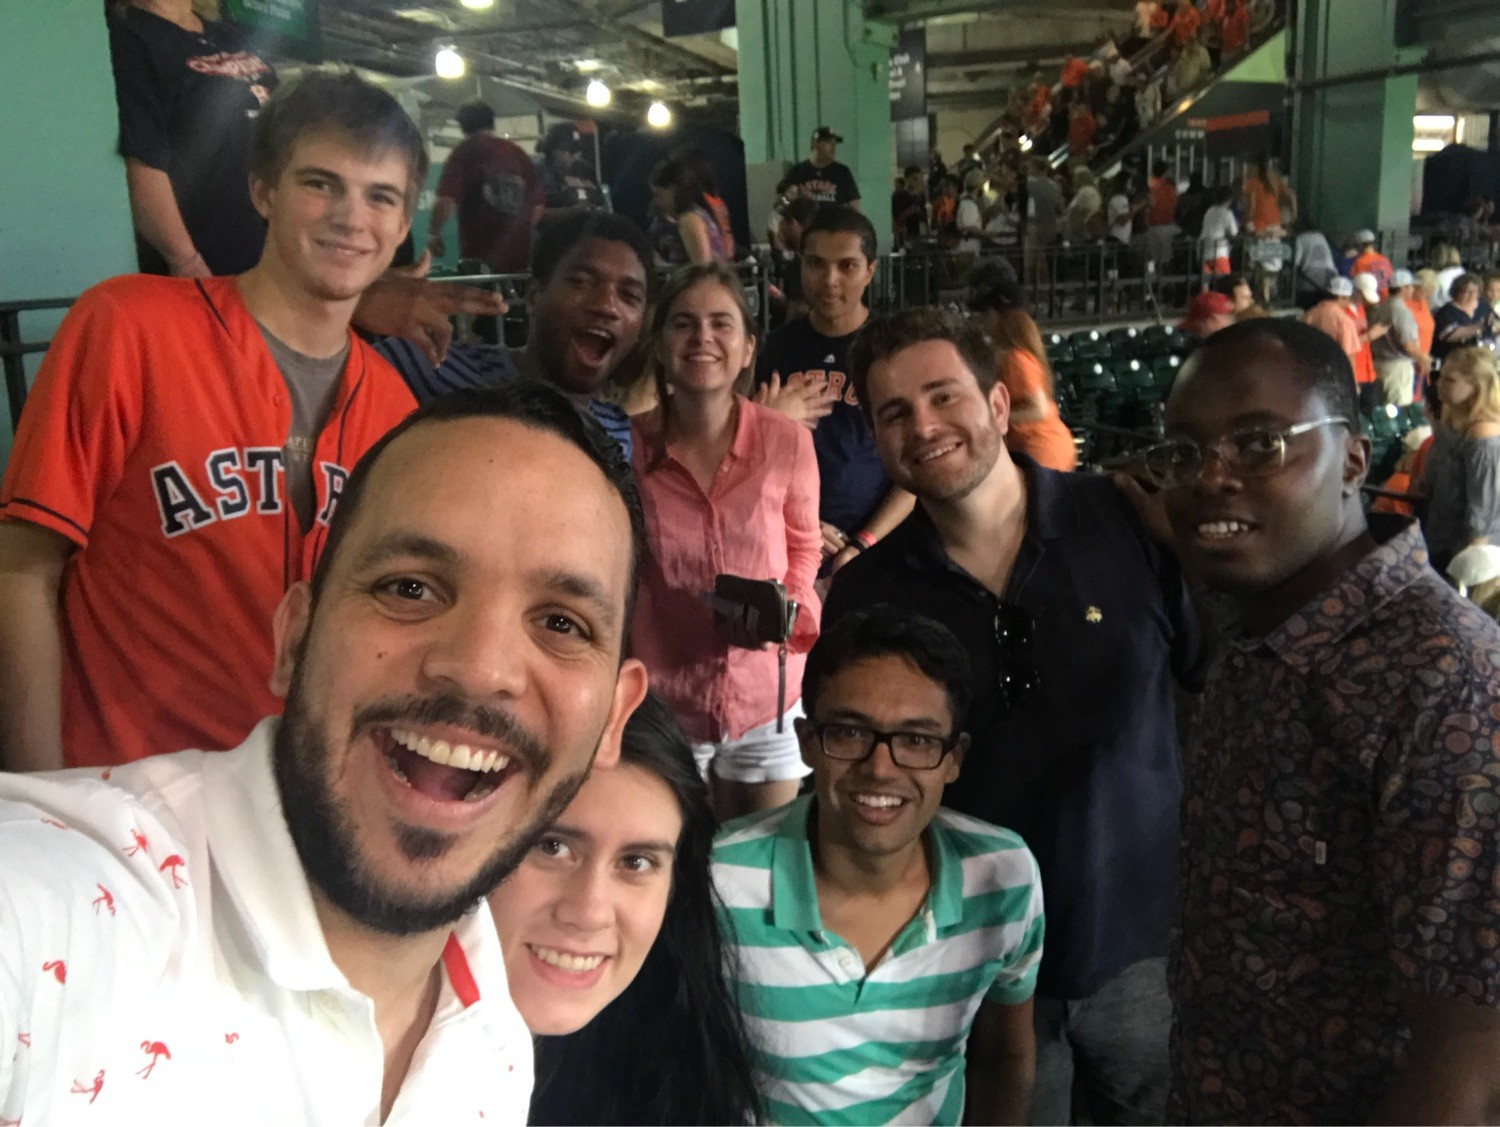 It's not every day that you get to watch the world series champs in action: at a Houston Astros game